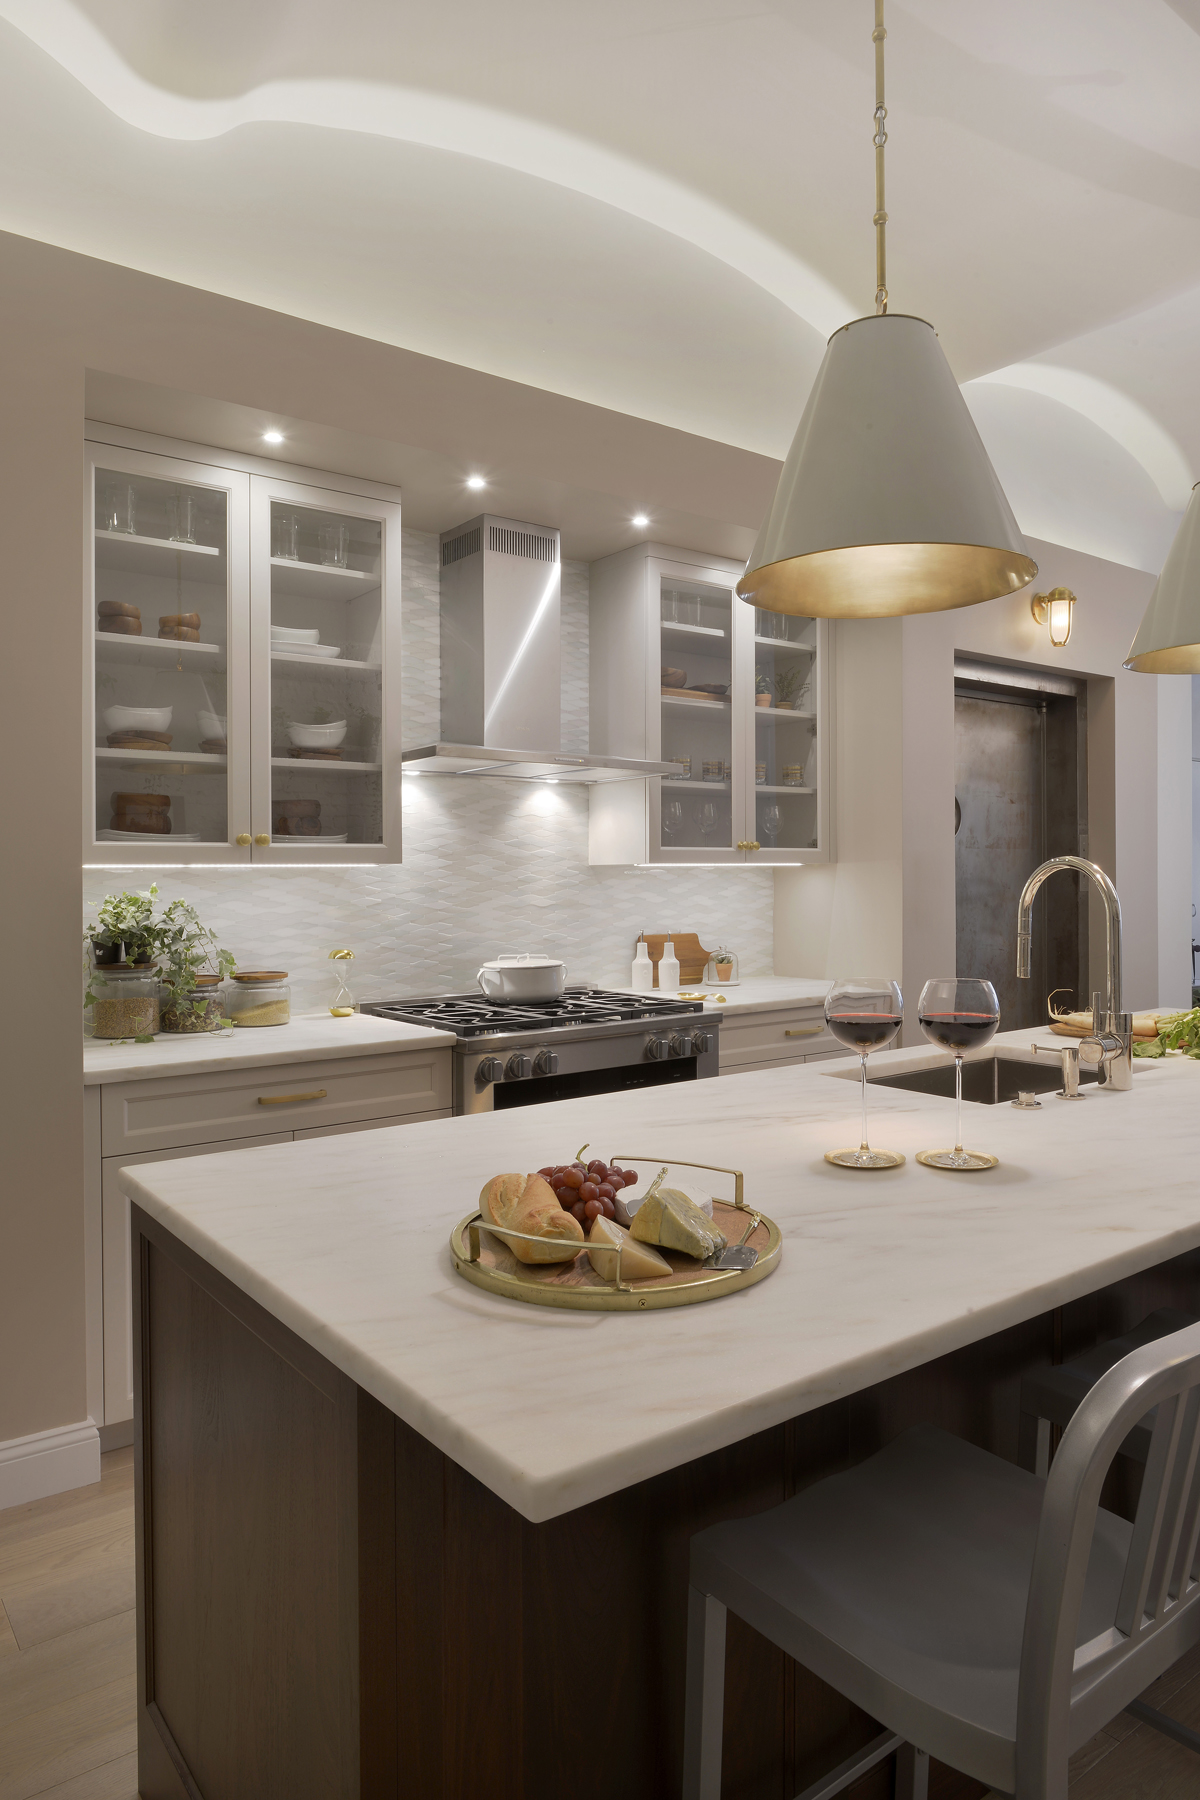 NYC loft kitchen features high celings, marble-topped walnut island with seating, and white painted, frameless shaker style cabinets by Bilotta. Upper cabinets have glass fronts. Design by Tabitha Tepe of Bilotta Kitchens.